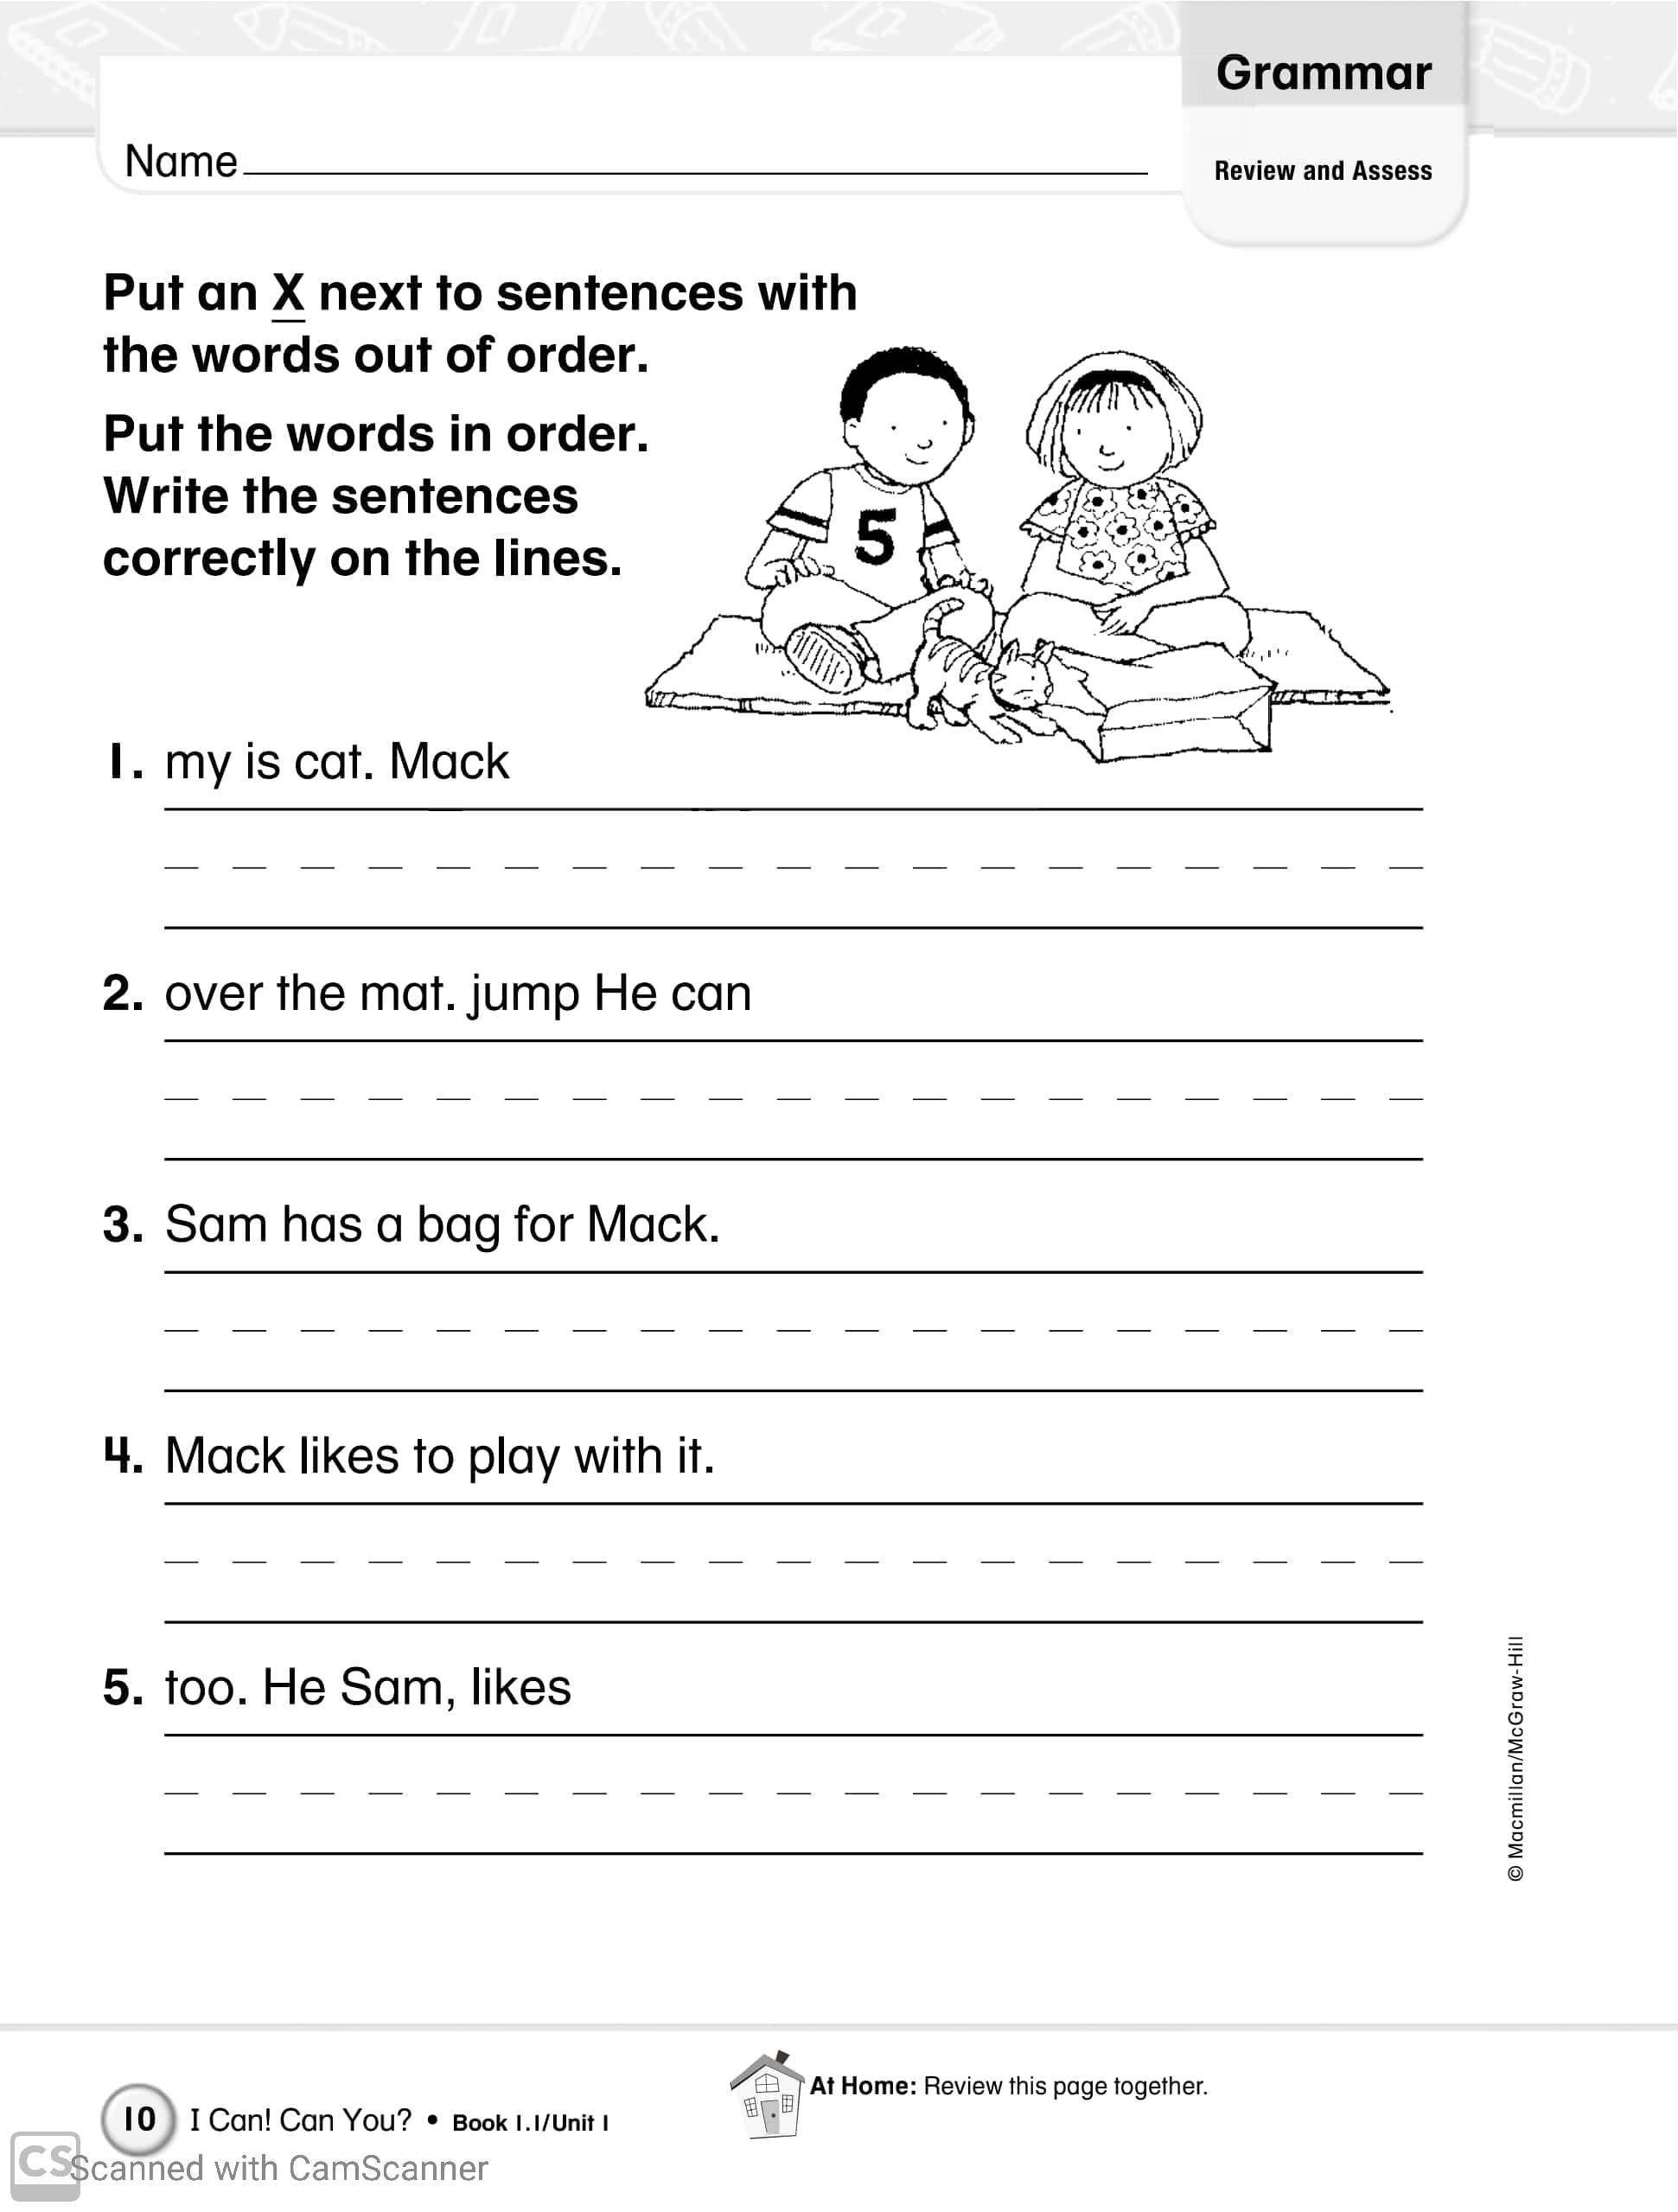 Grammar Practice Worksheets For Grade 1 Teaching Kids To